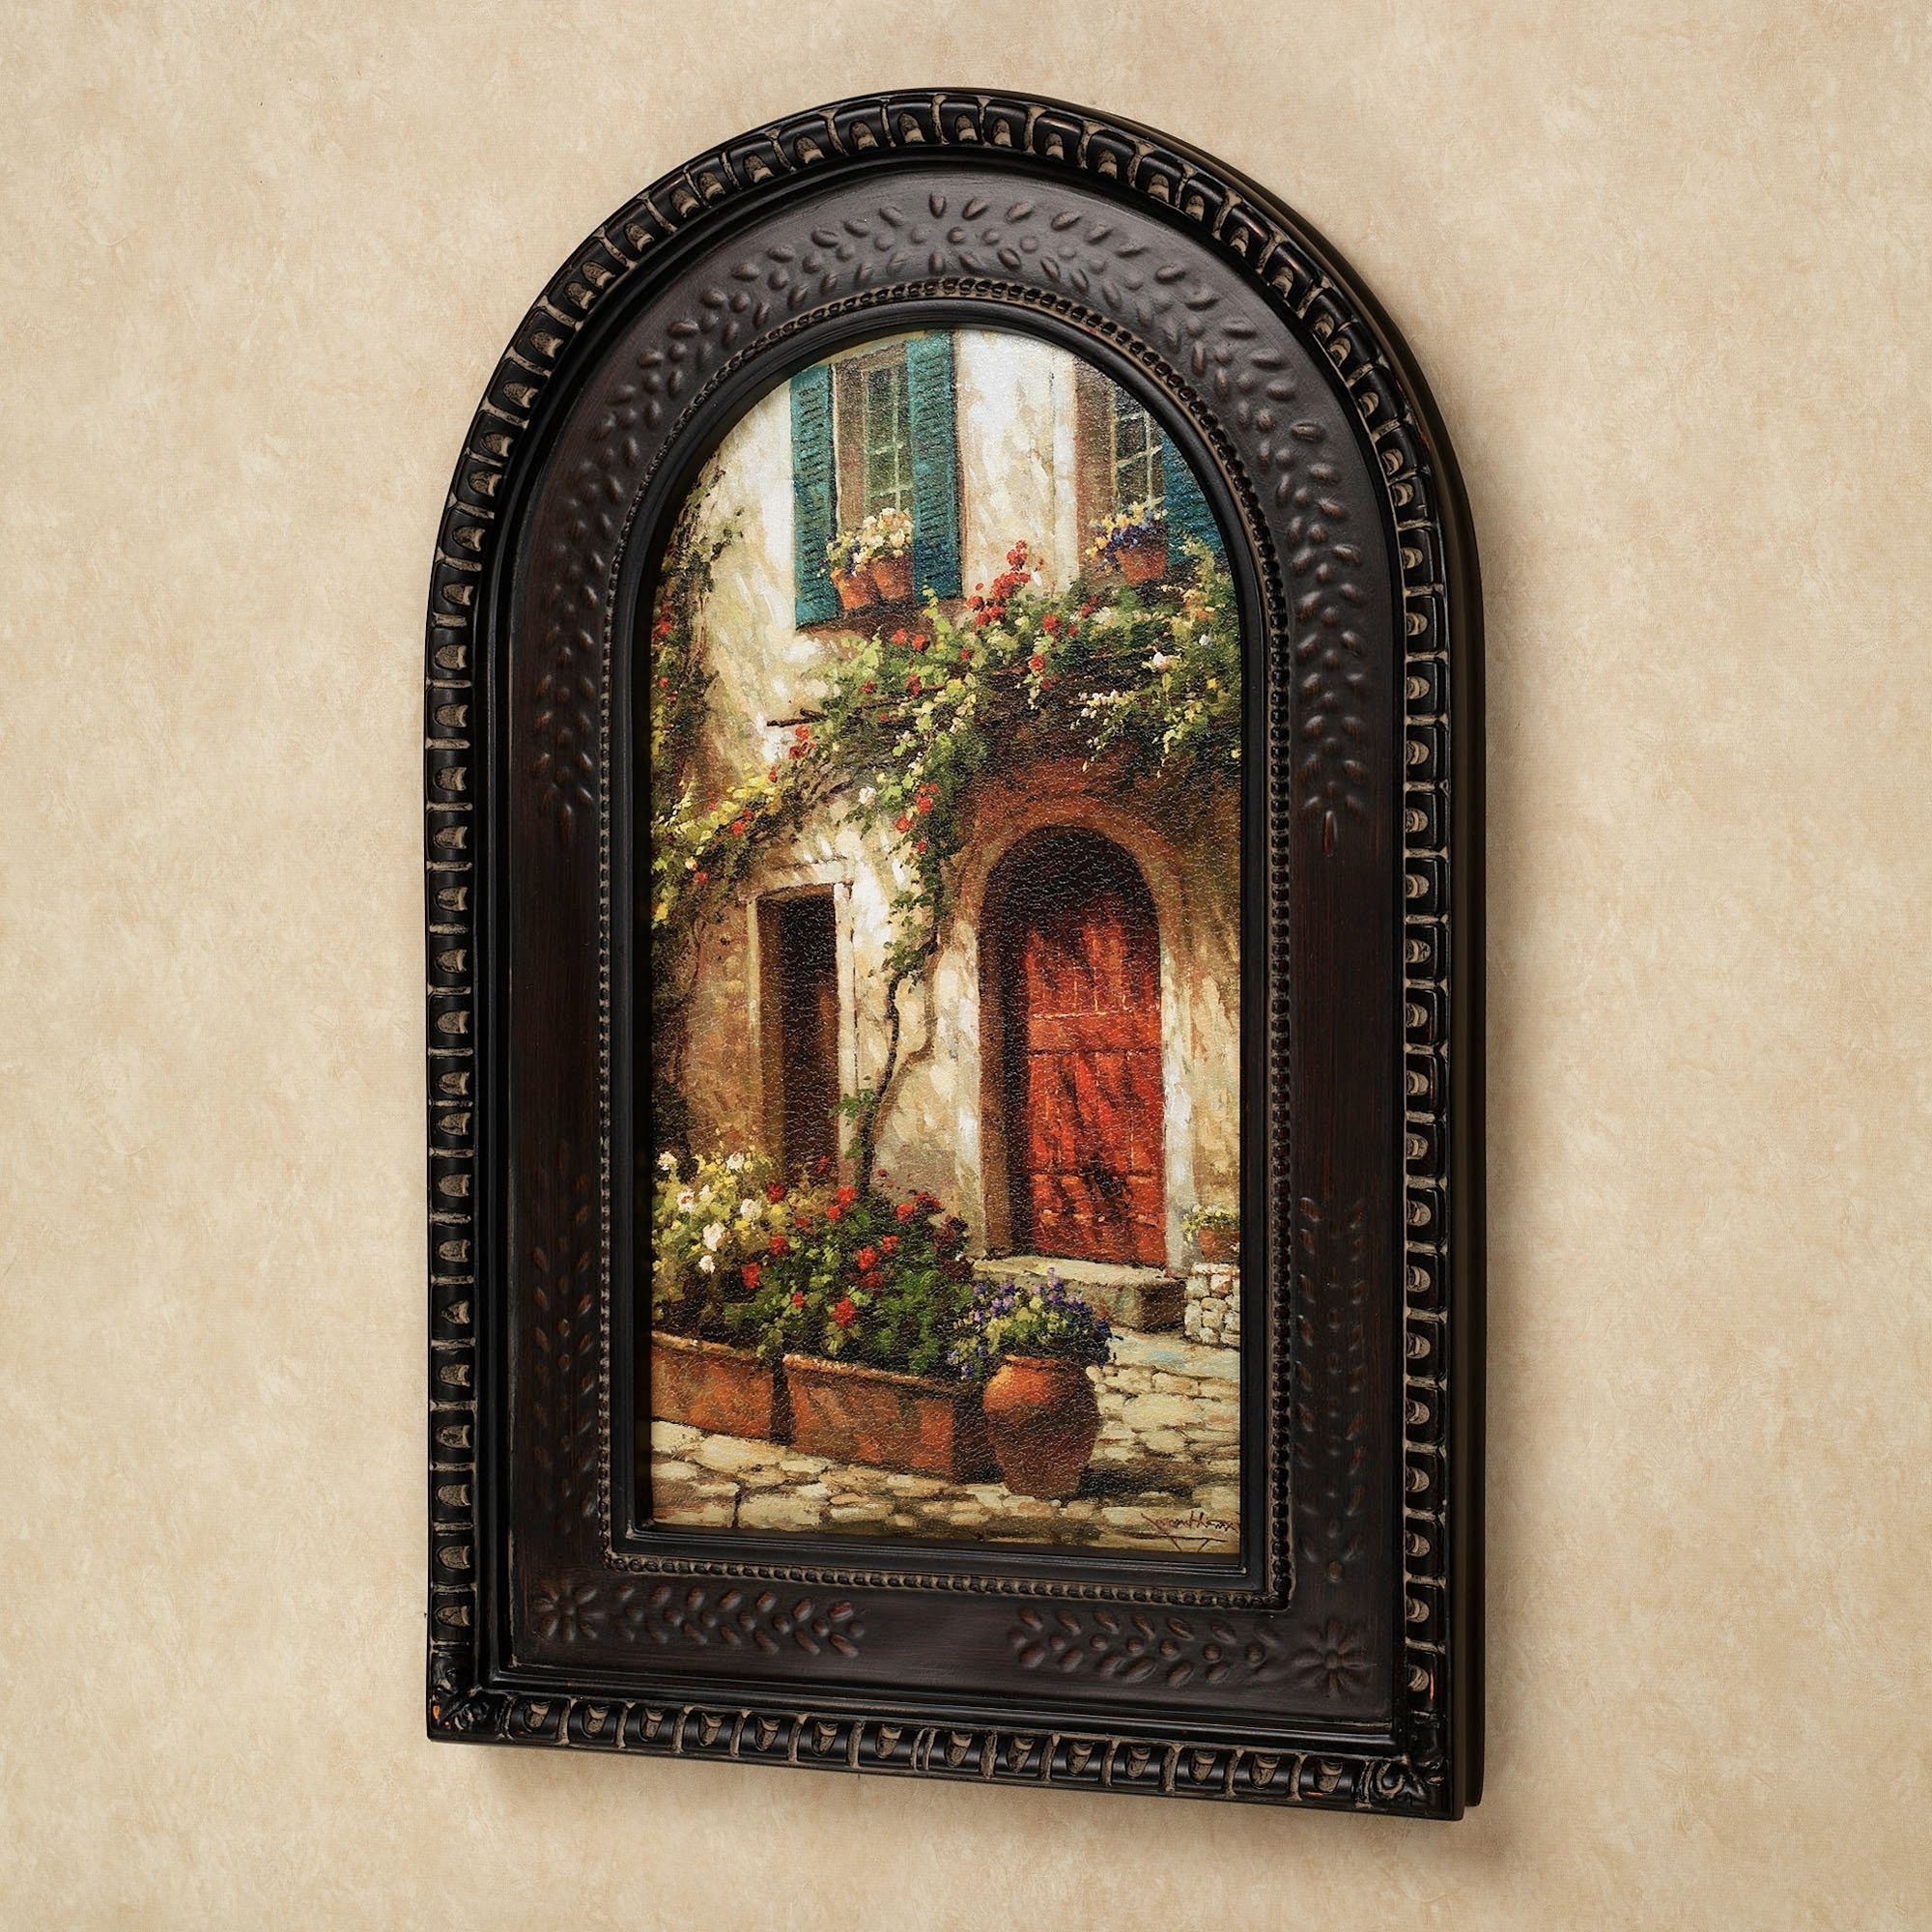 Best And Newest Tuscan Wall Art Inside Red Door Italian Scene Arched Framed Wall Art, Tuscan Wall Art (Gallery 19 of 20)